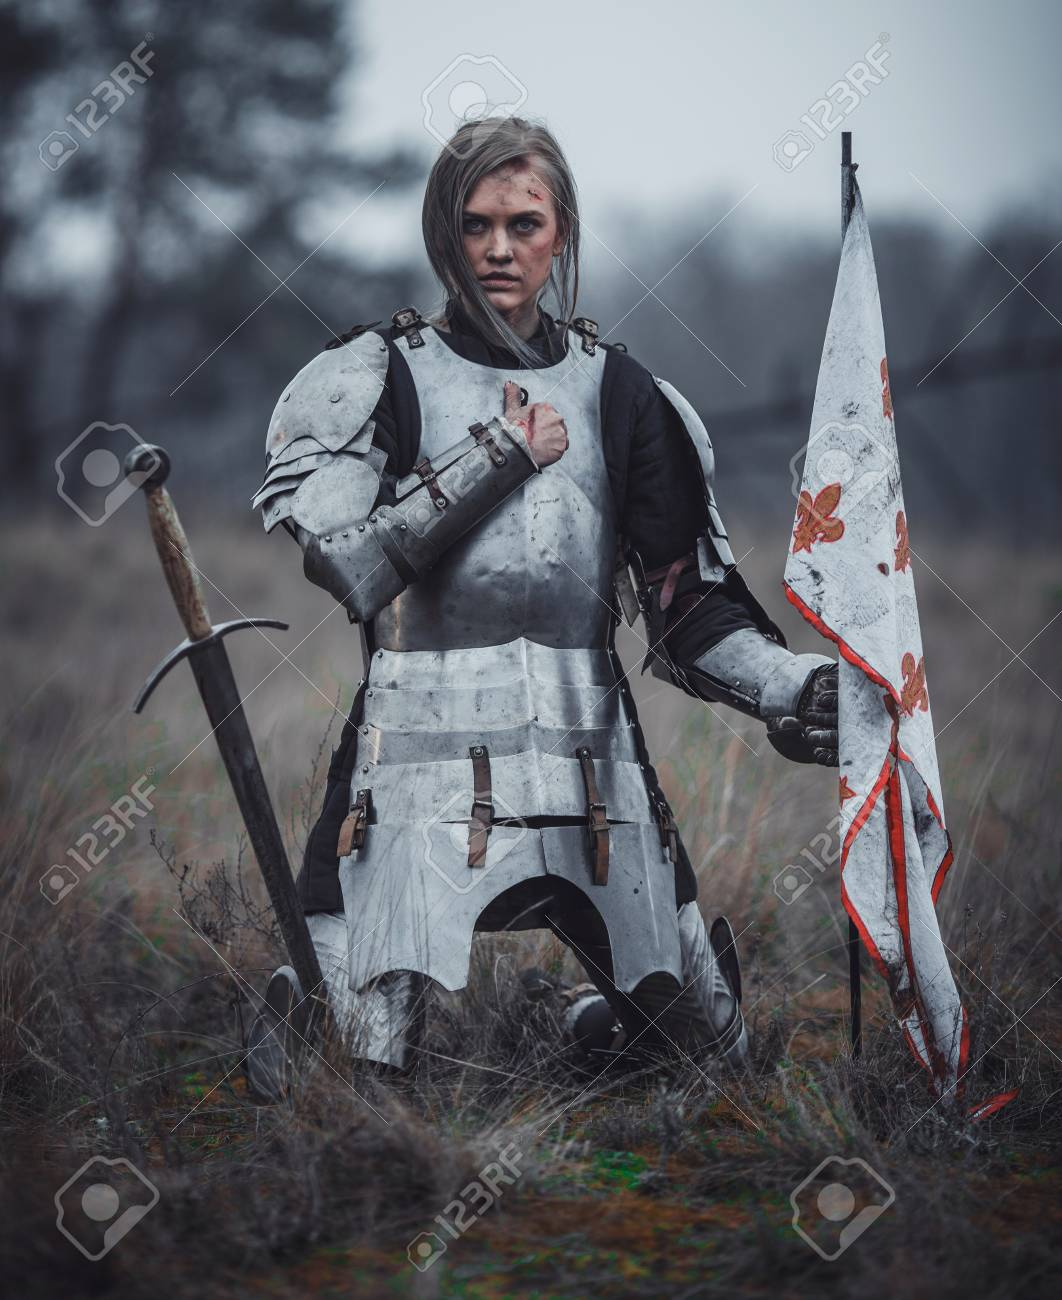 girl in armor kneels with flag in her hands and sword on meadow